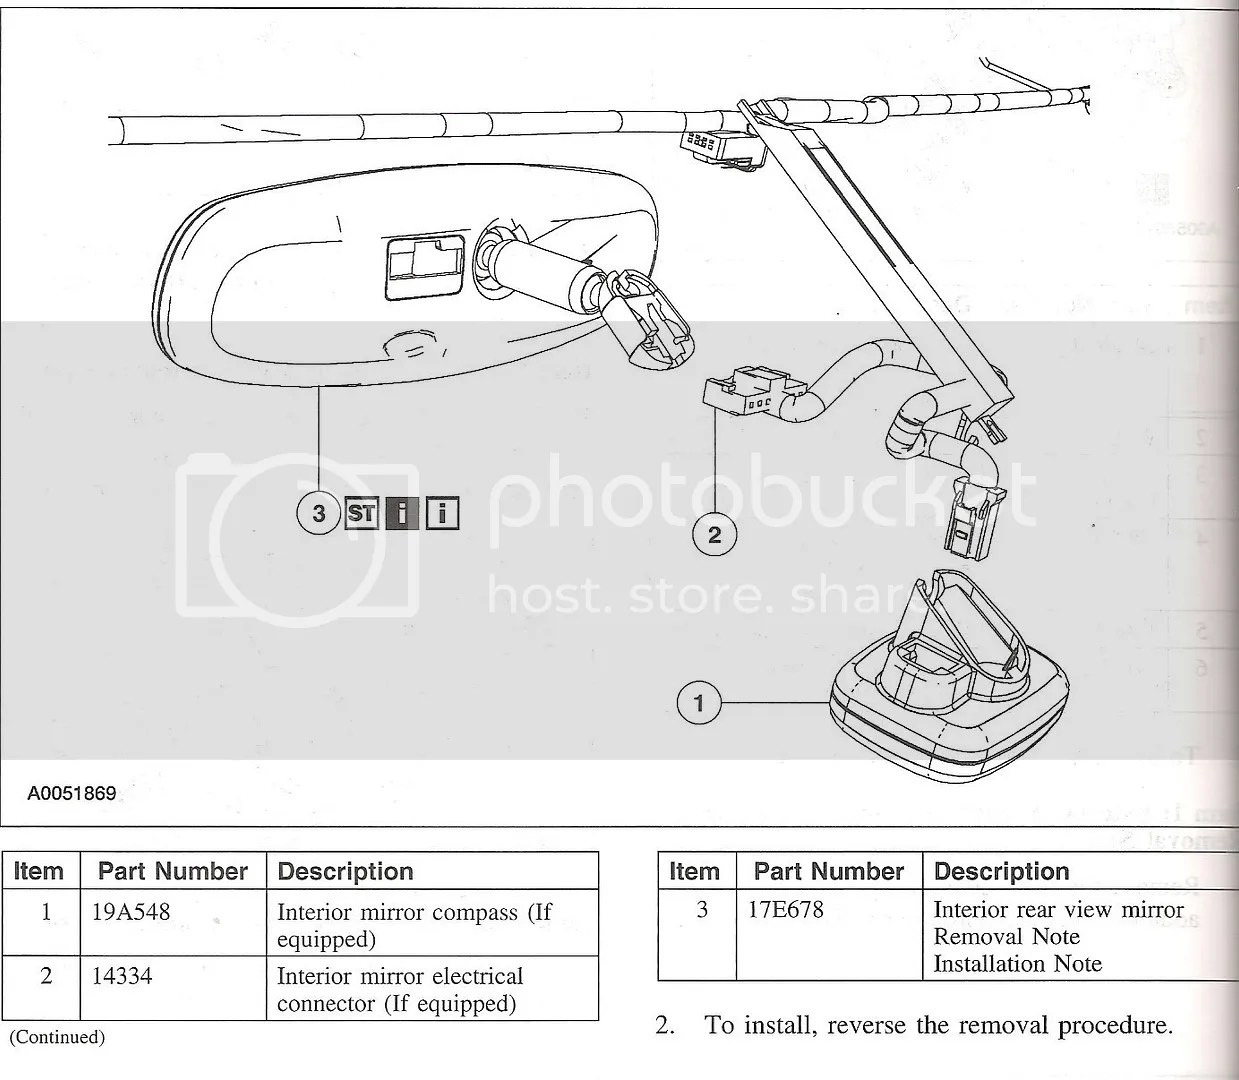 2008 ford f250 power mirror wiring diagram grundfos aquastat what is the little black box under rear view mirror?? | explorer and ranger forums ...